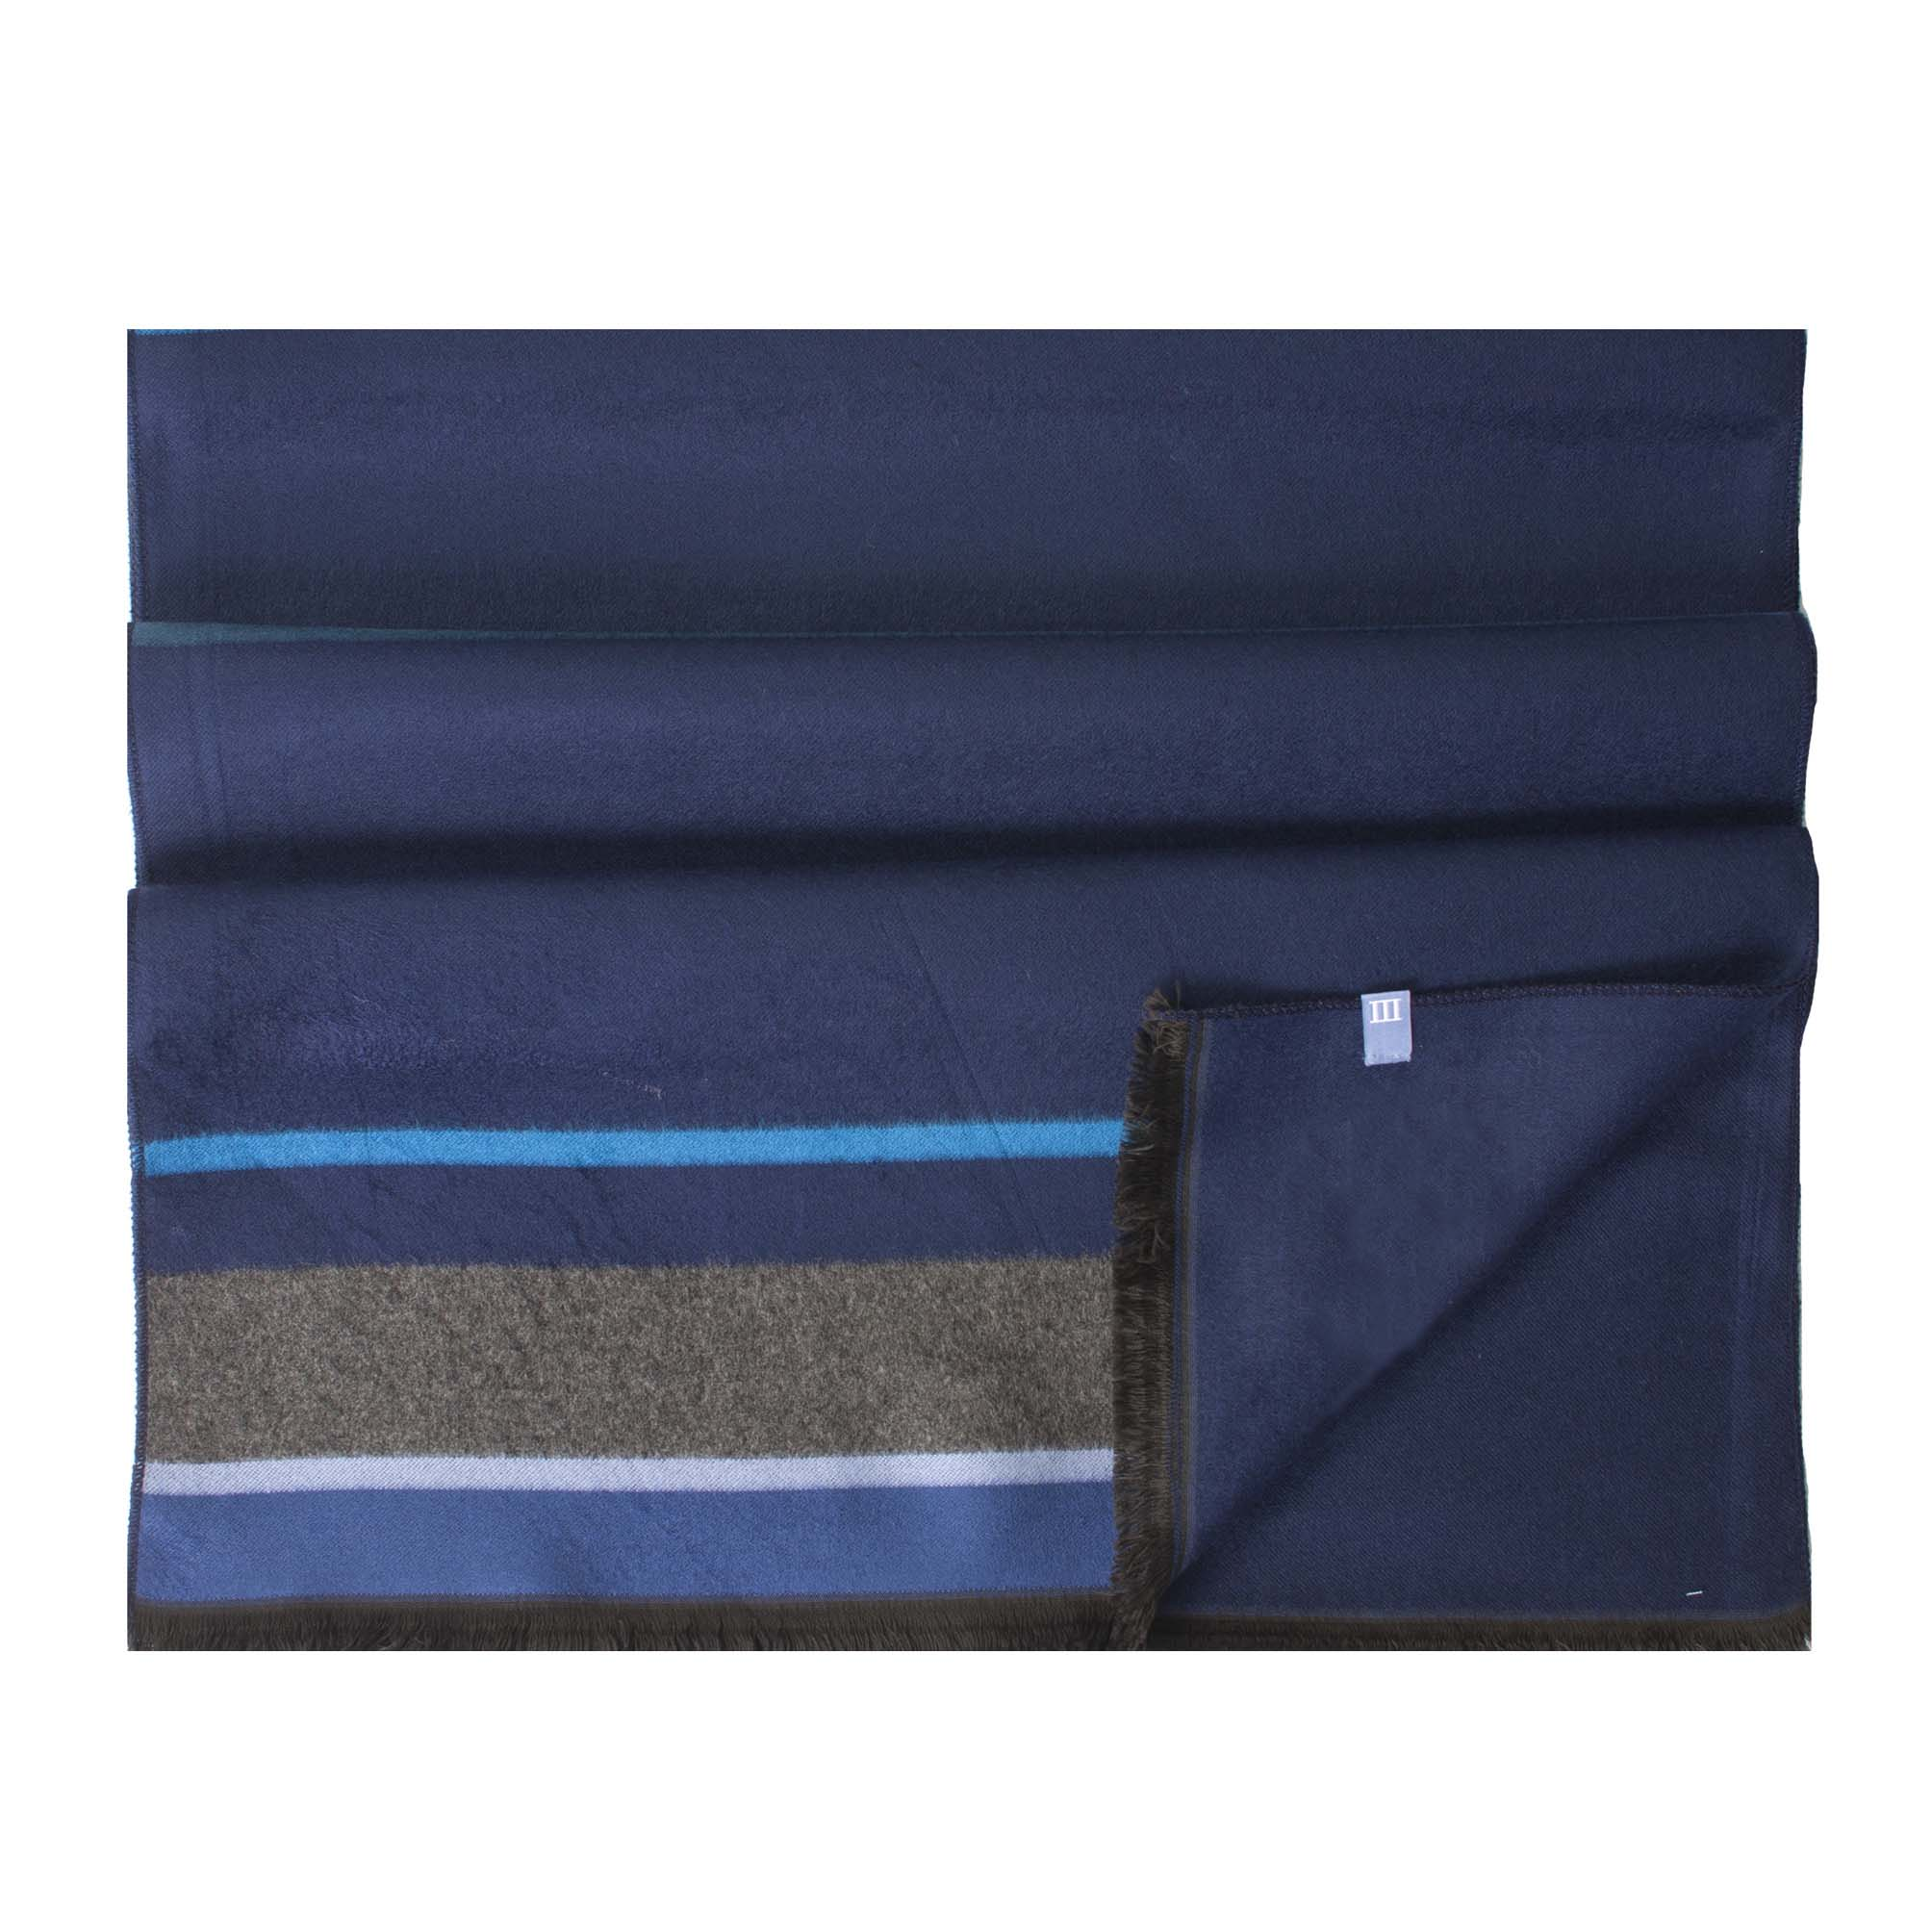 Scarf viscose double face, striped